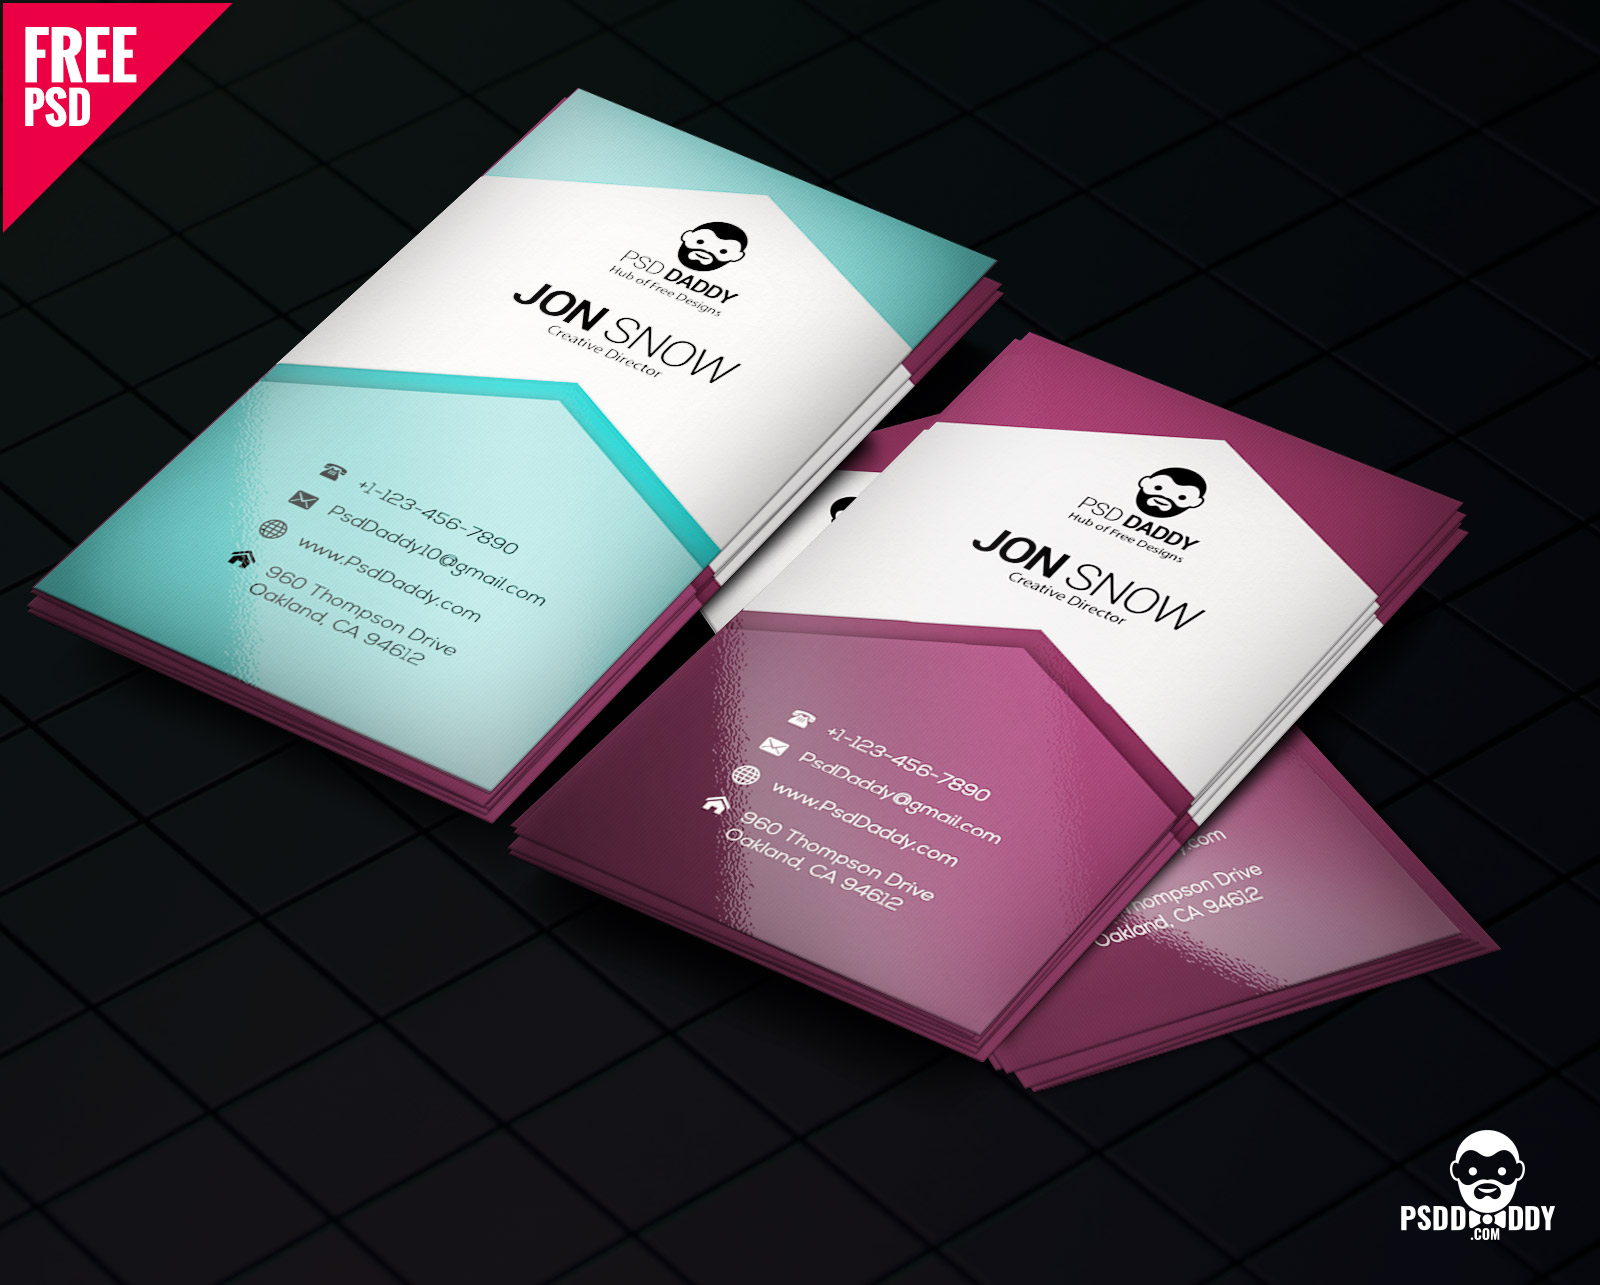 Download]Creative Business Card PSD Free